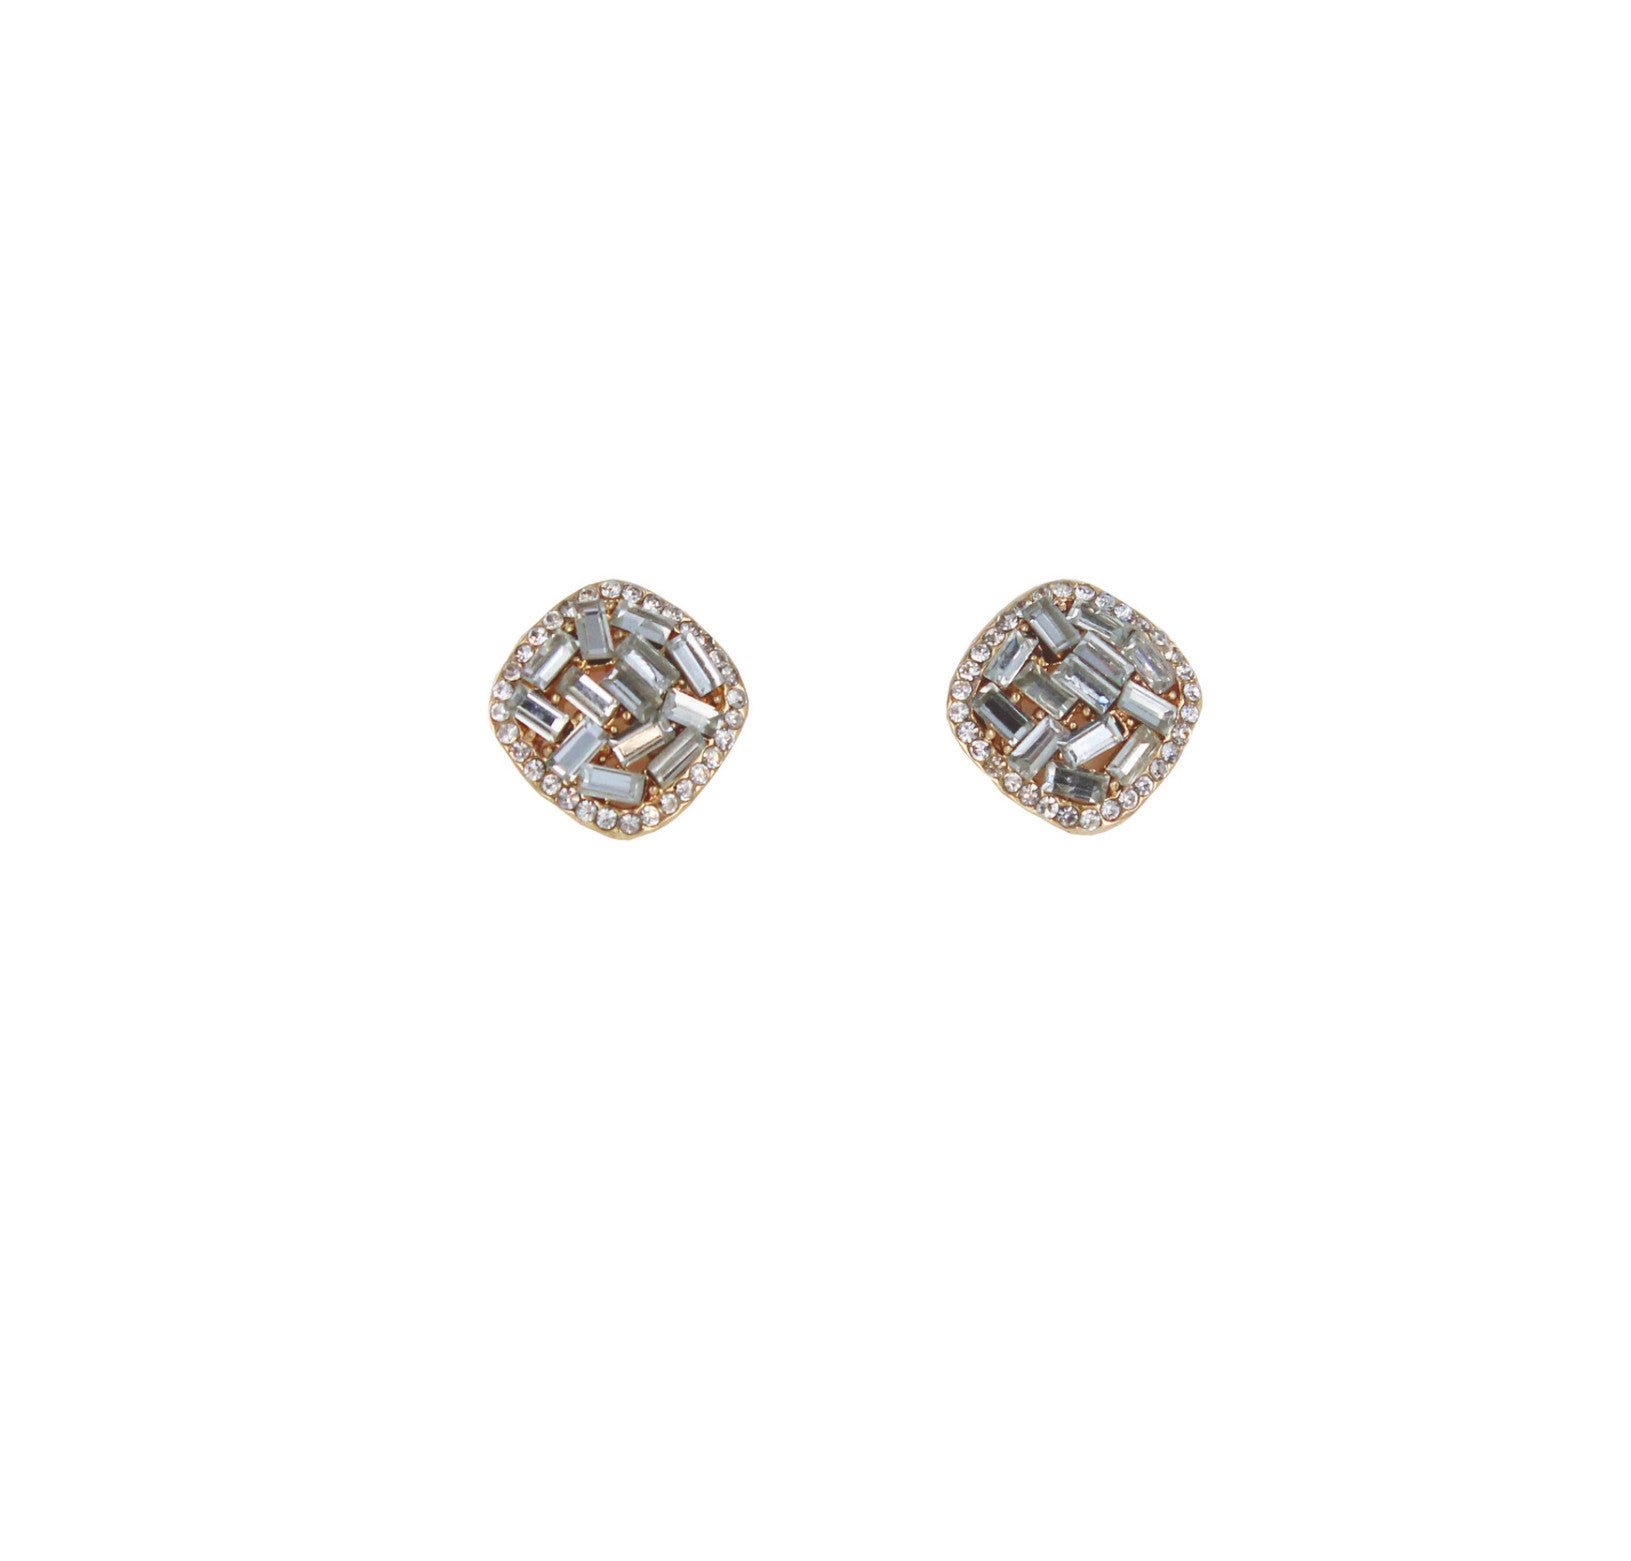 Chloé Sparkly Square Stud Earrings